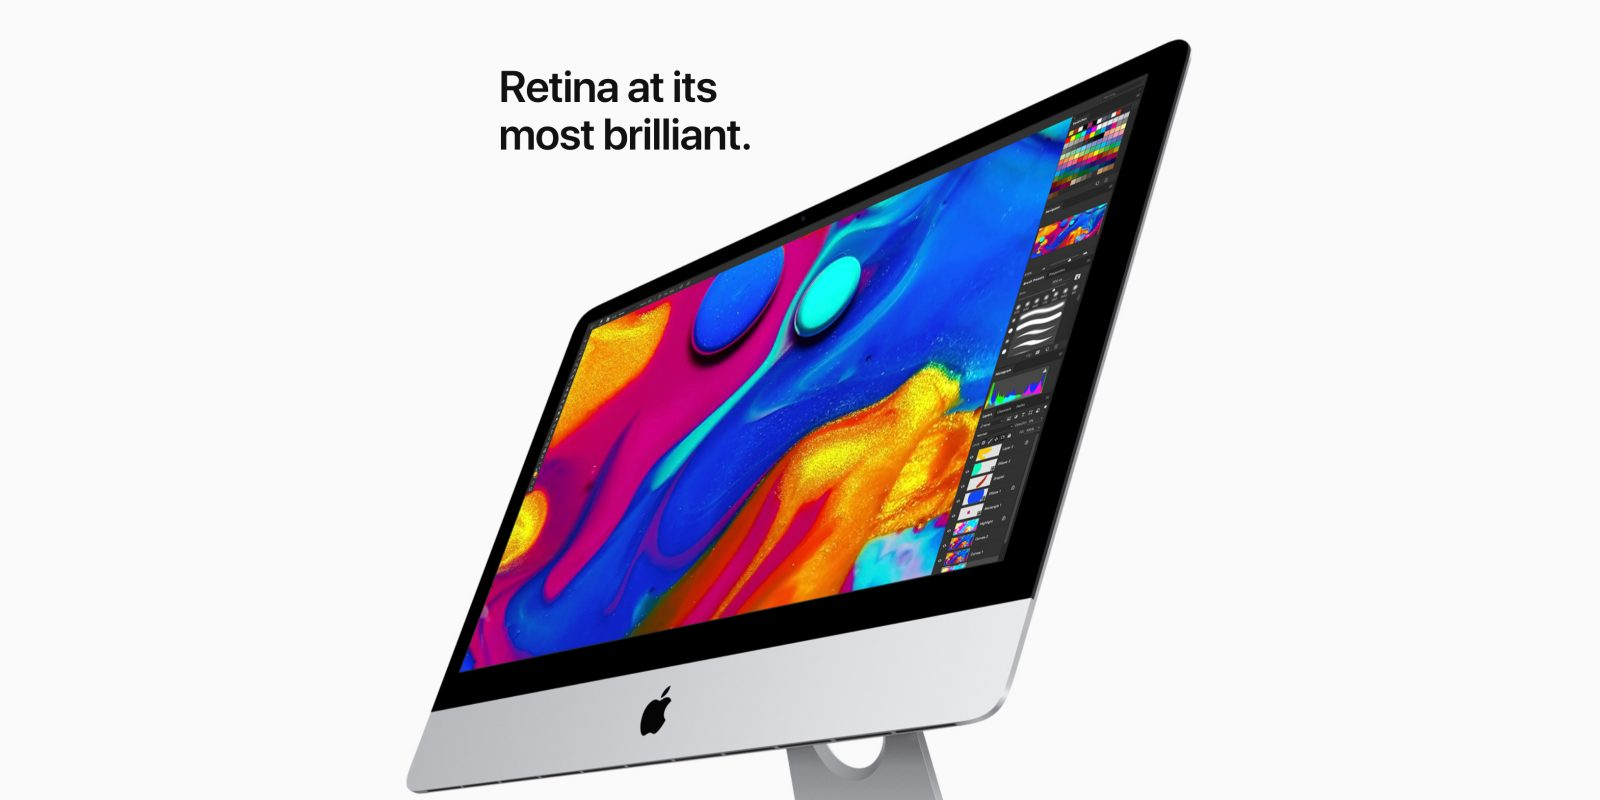 Save upwards of $720 on Apple's previous generation 27-inch 5K iMac